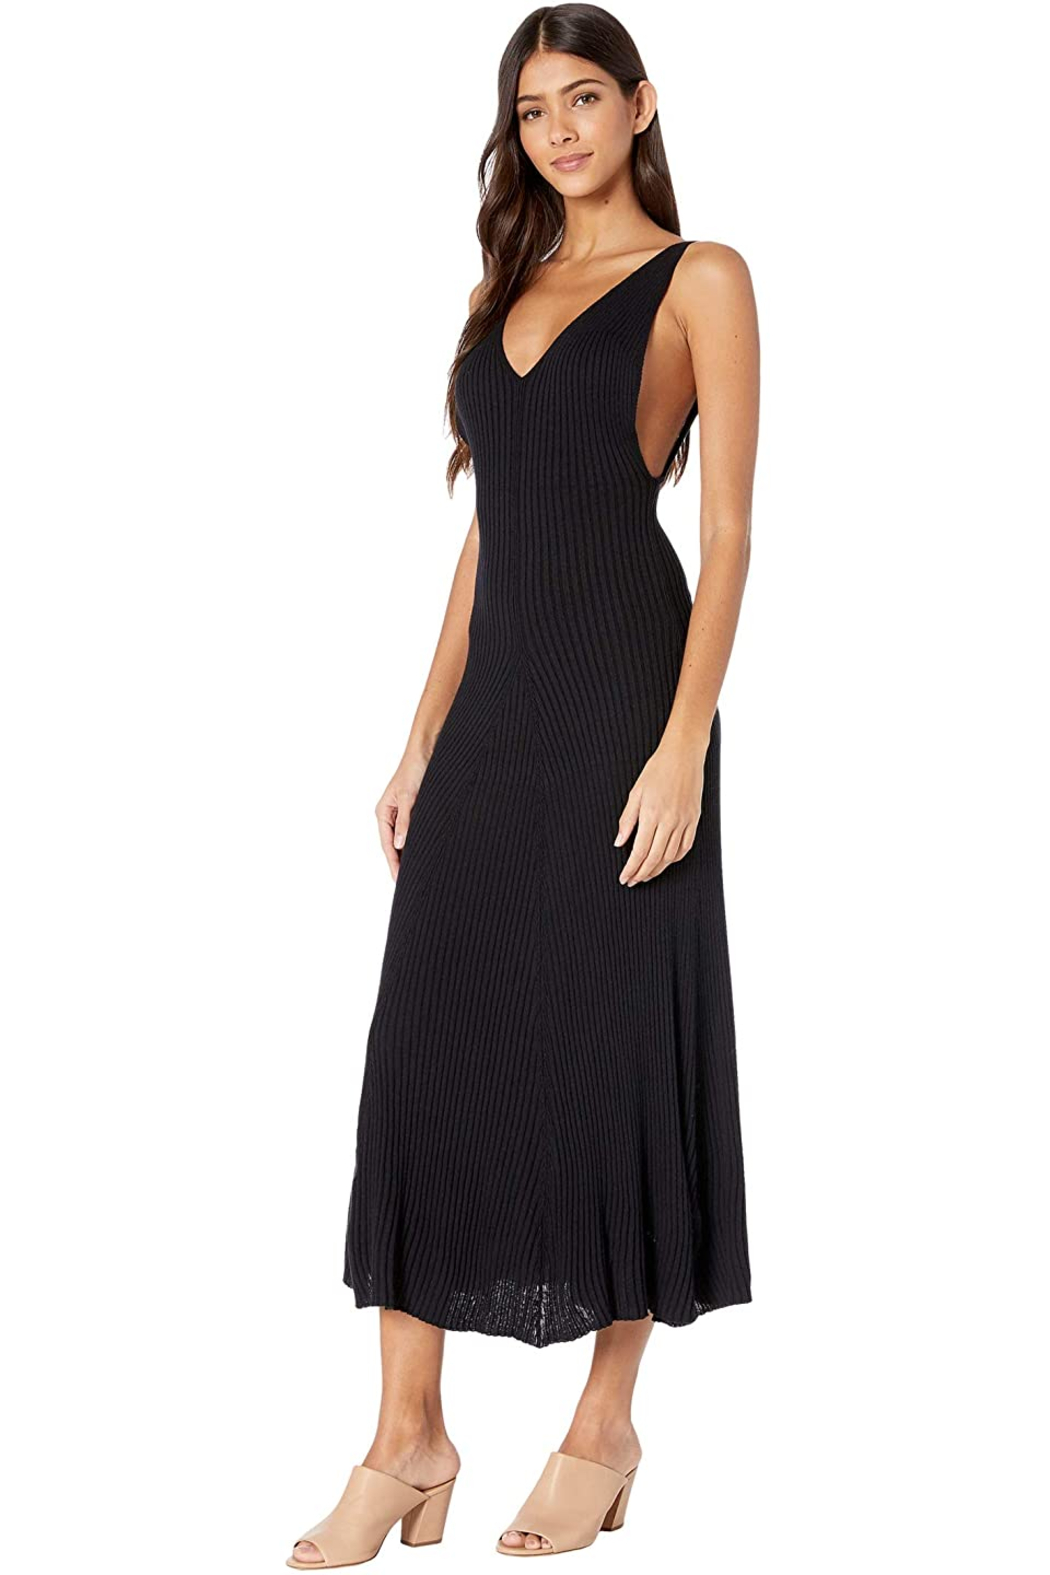 Free People Sweet Slip Dress in Black - Front Cropped Image